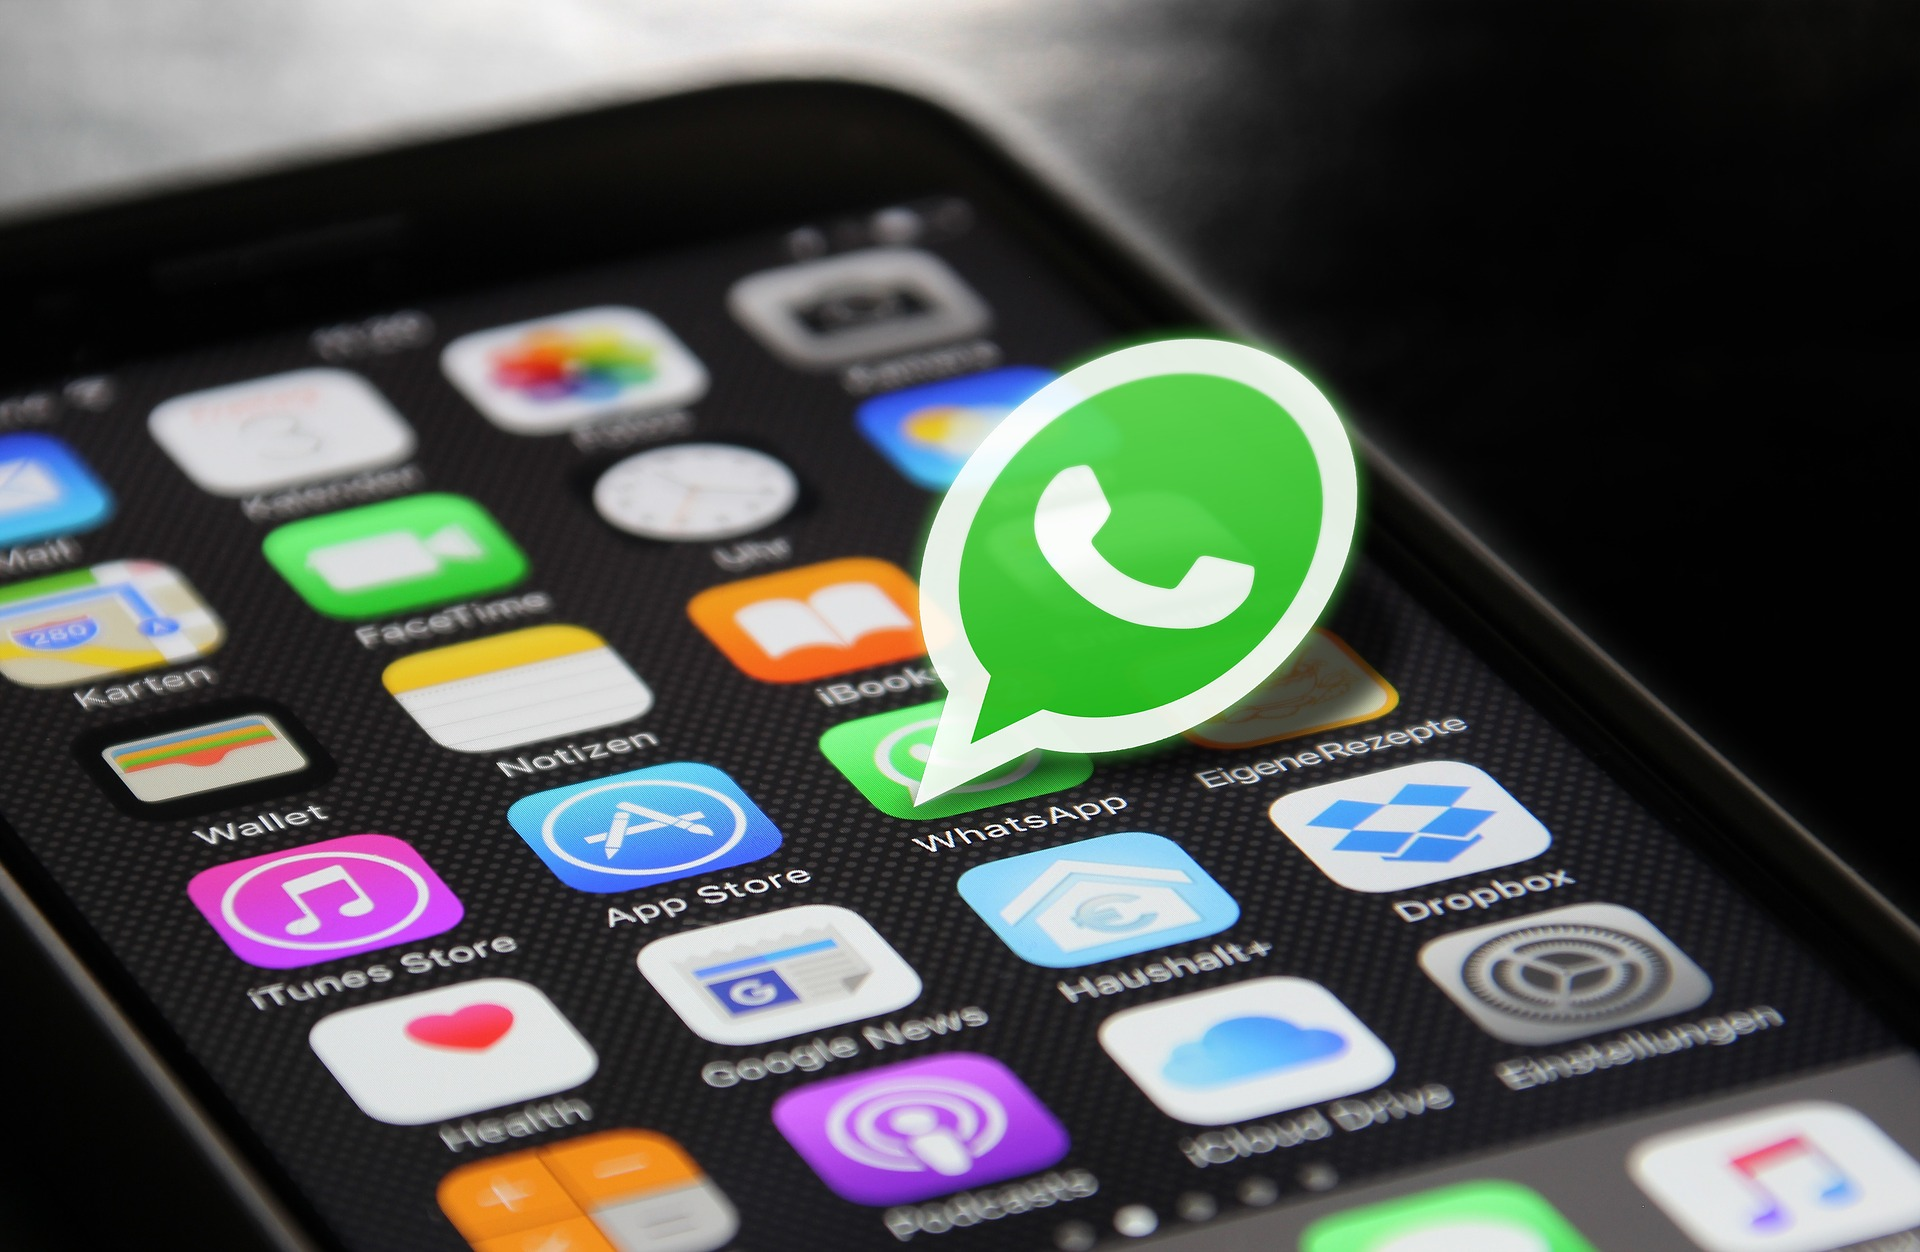 mobile phone with whatsapp installed